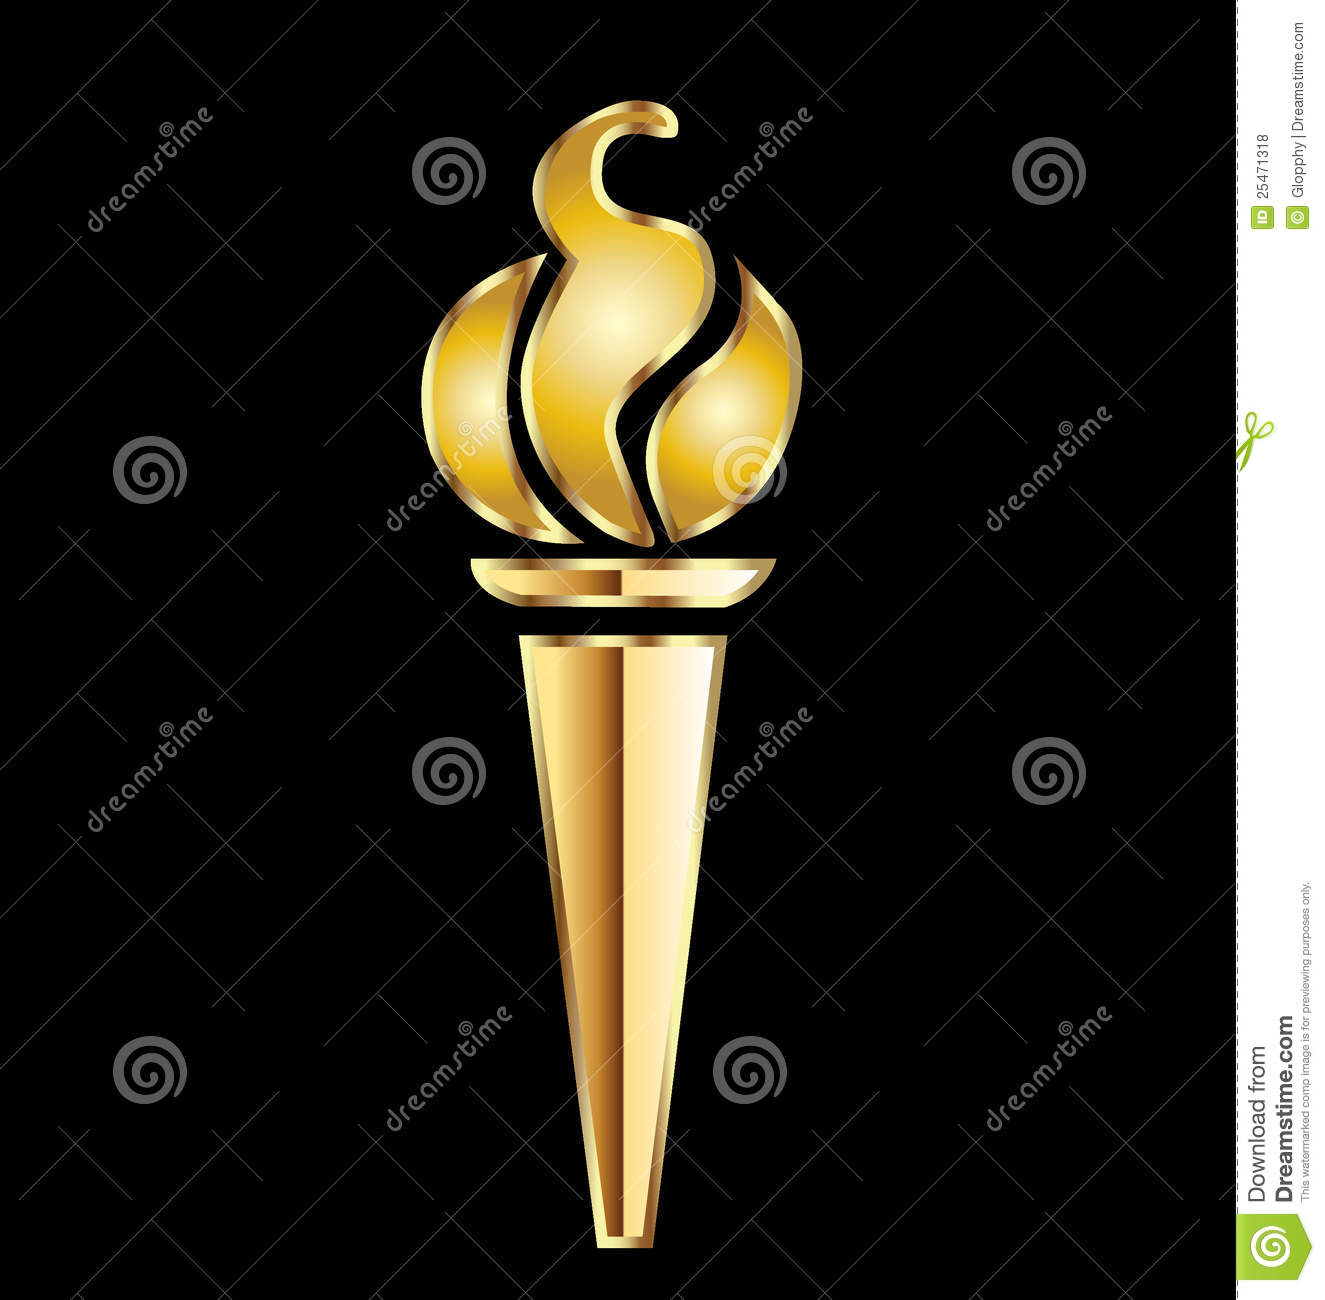 olympic gold torch royalty free stock photos image 25471318